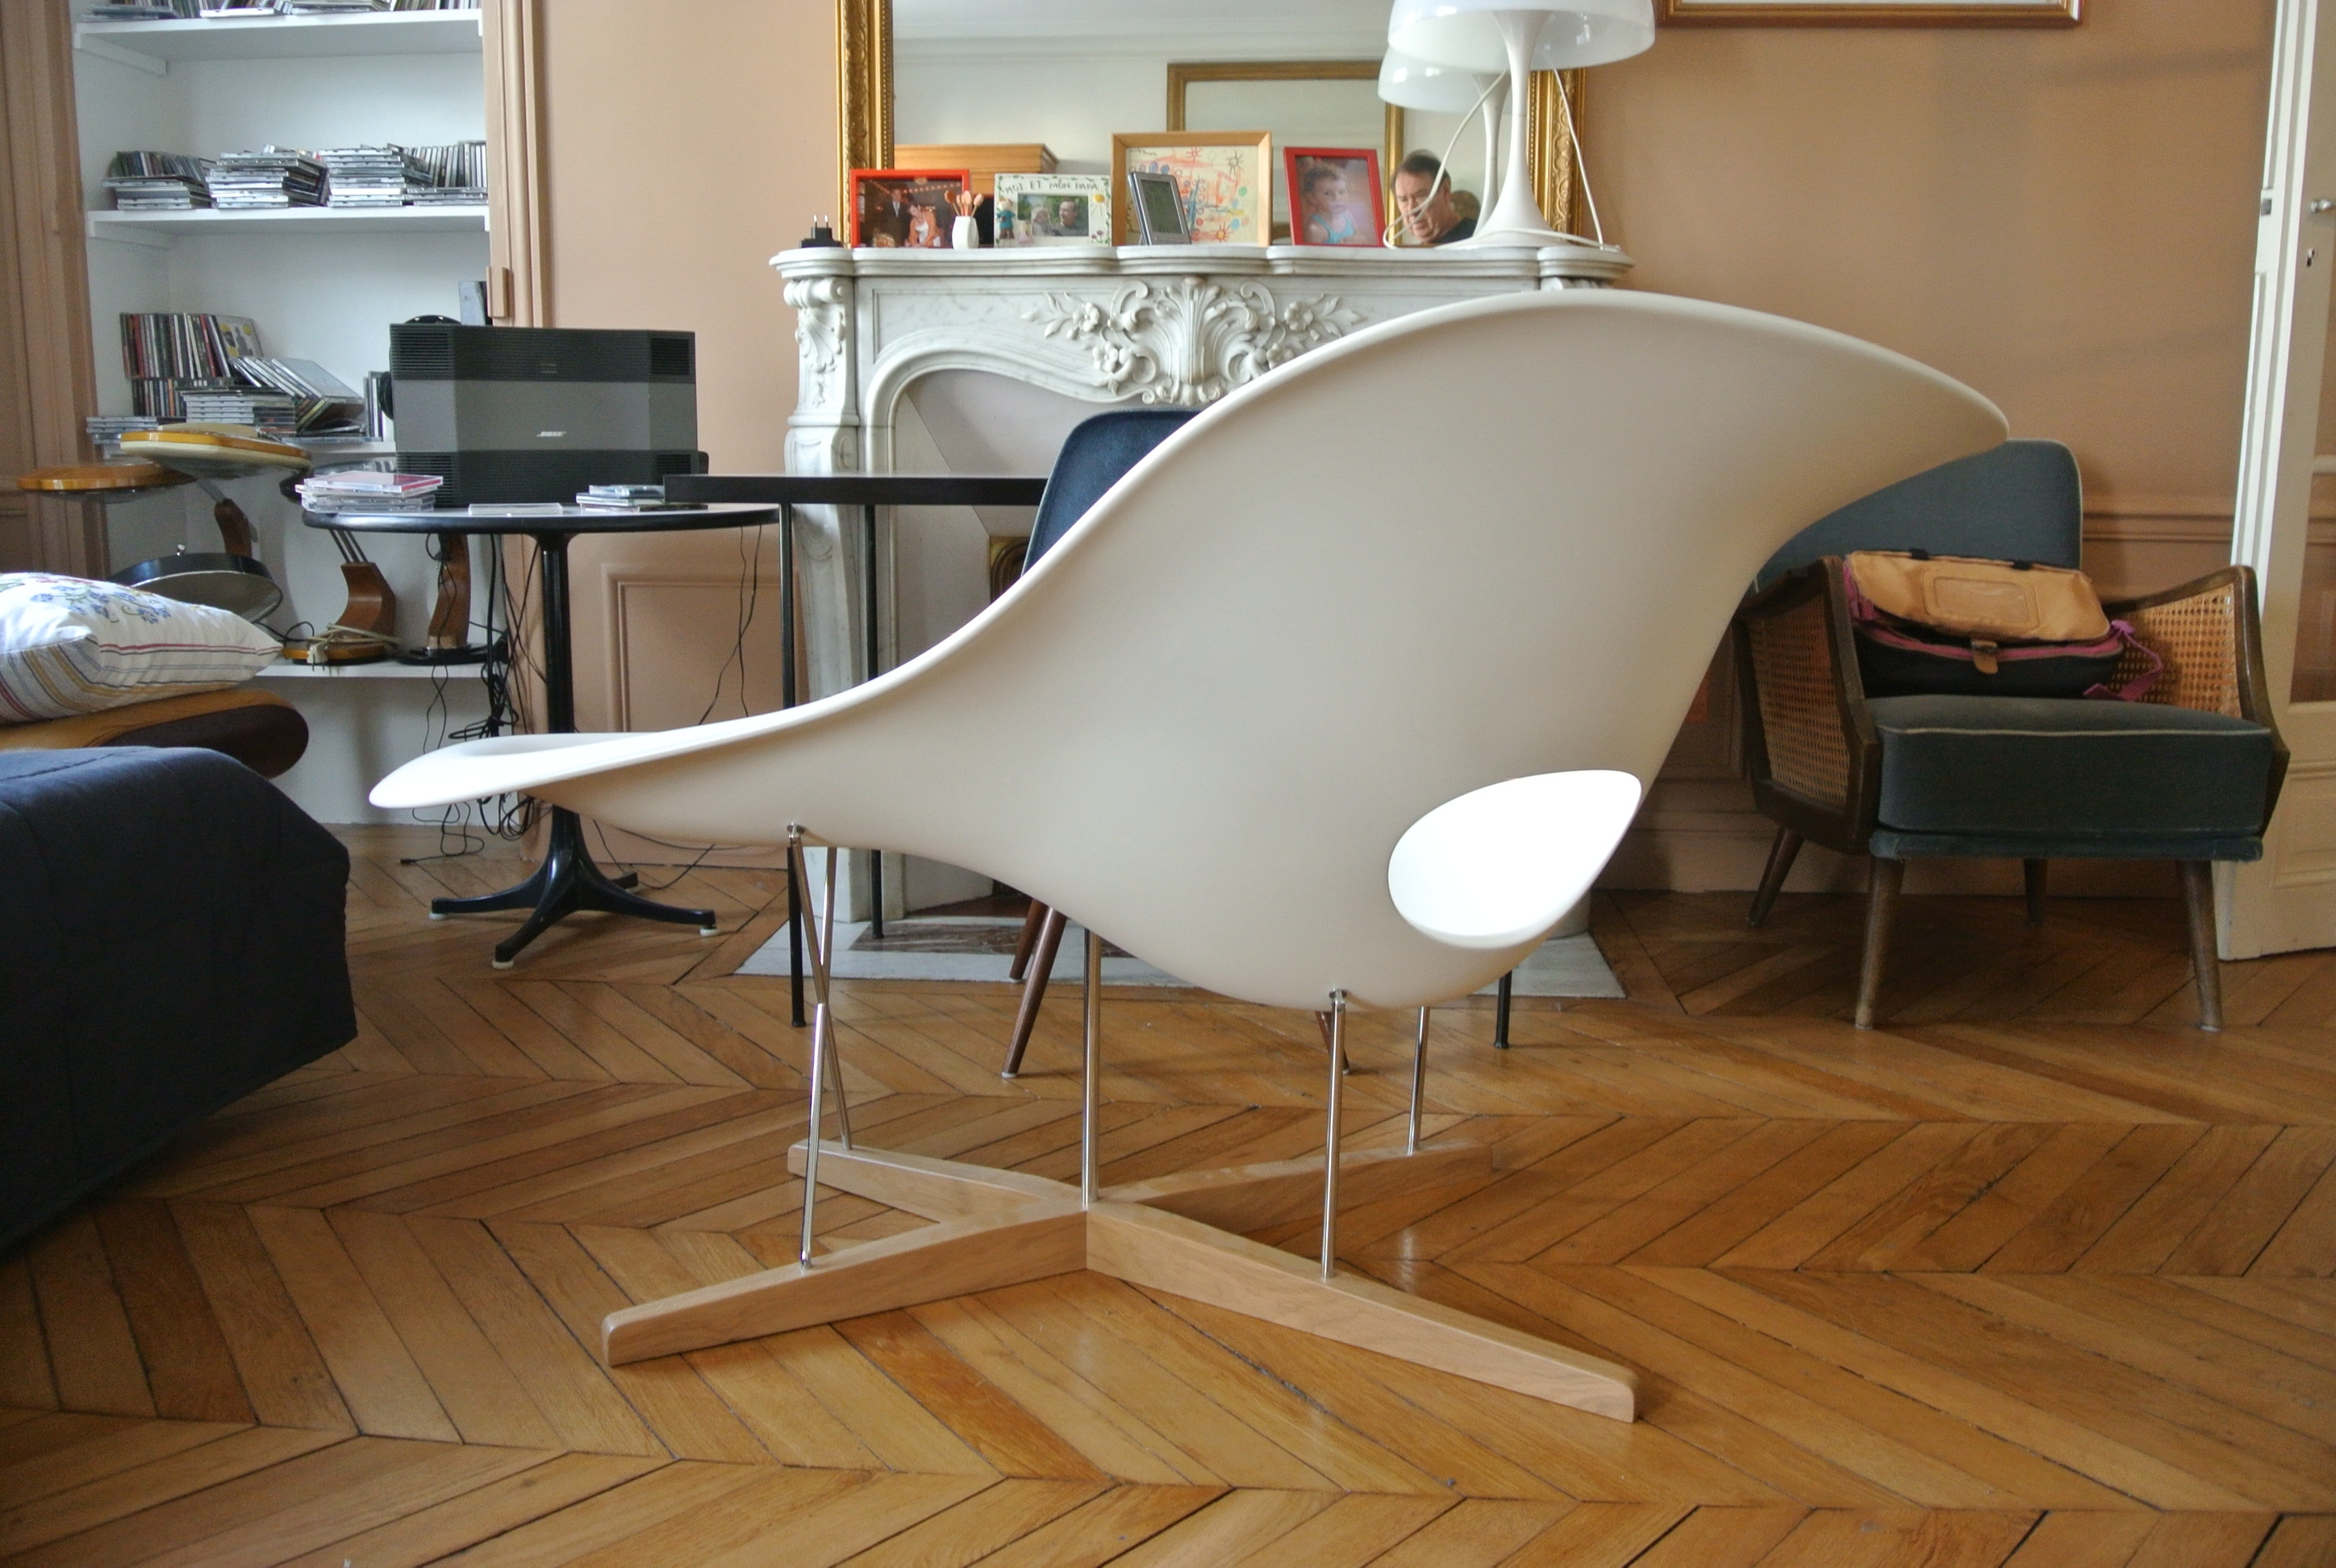 Chaise imitation charles eames excellent eames wire chair for Coussin pour chaise eames